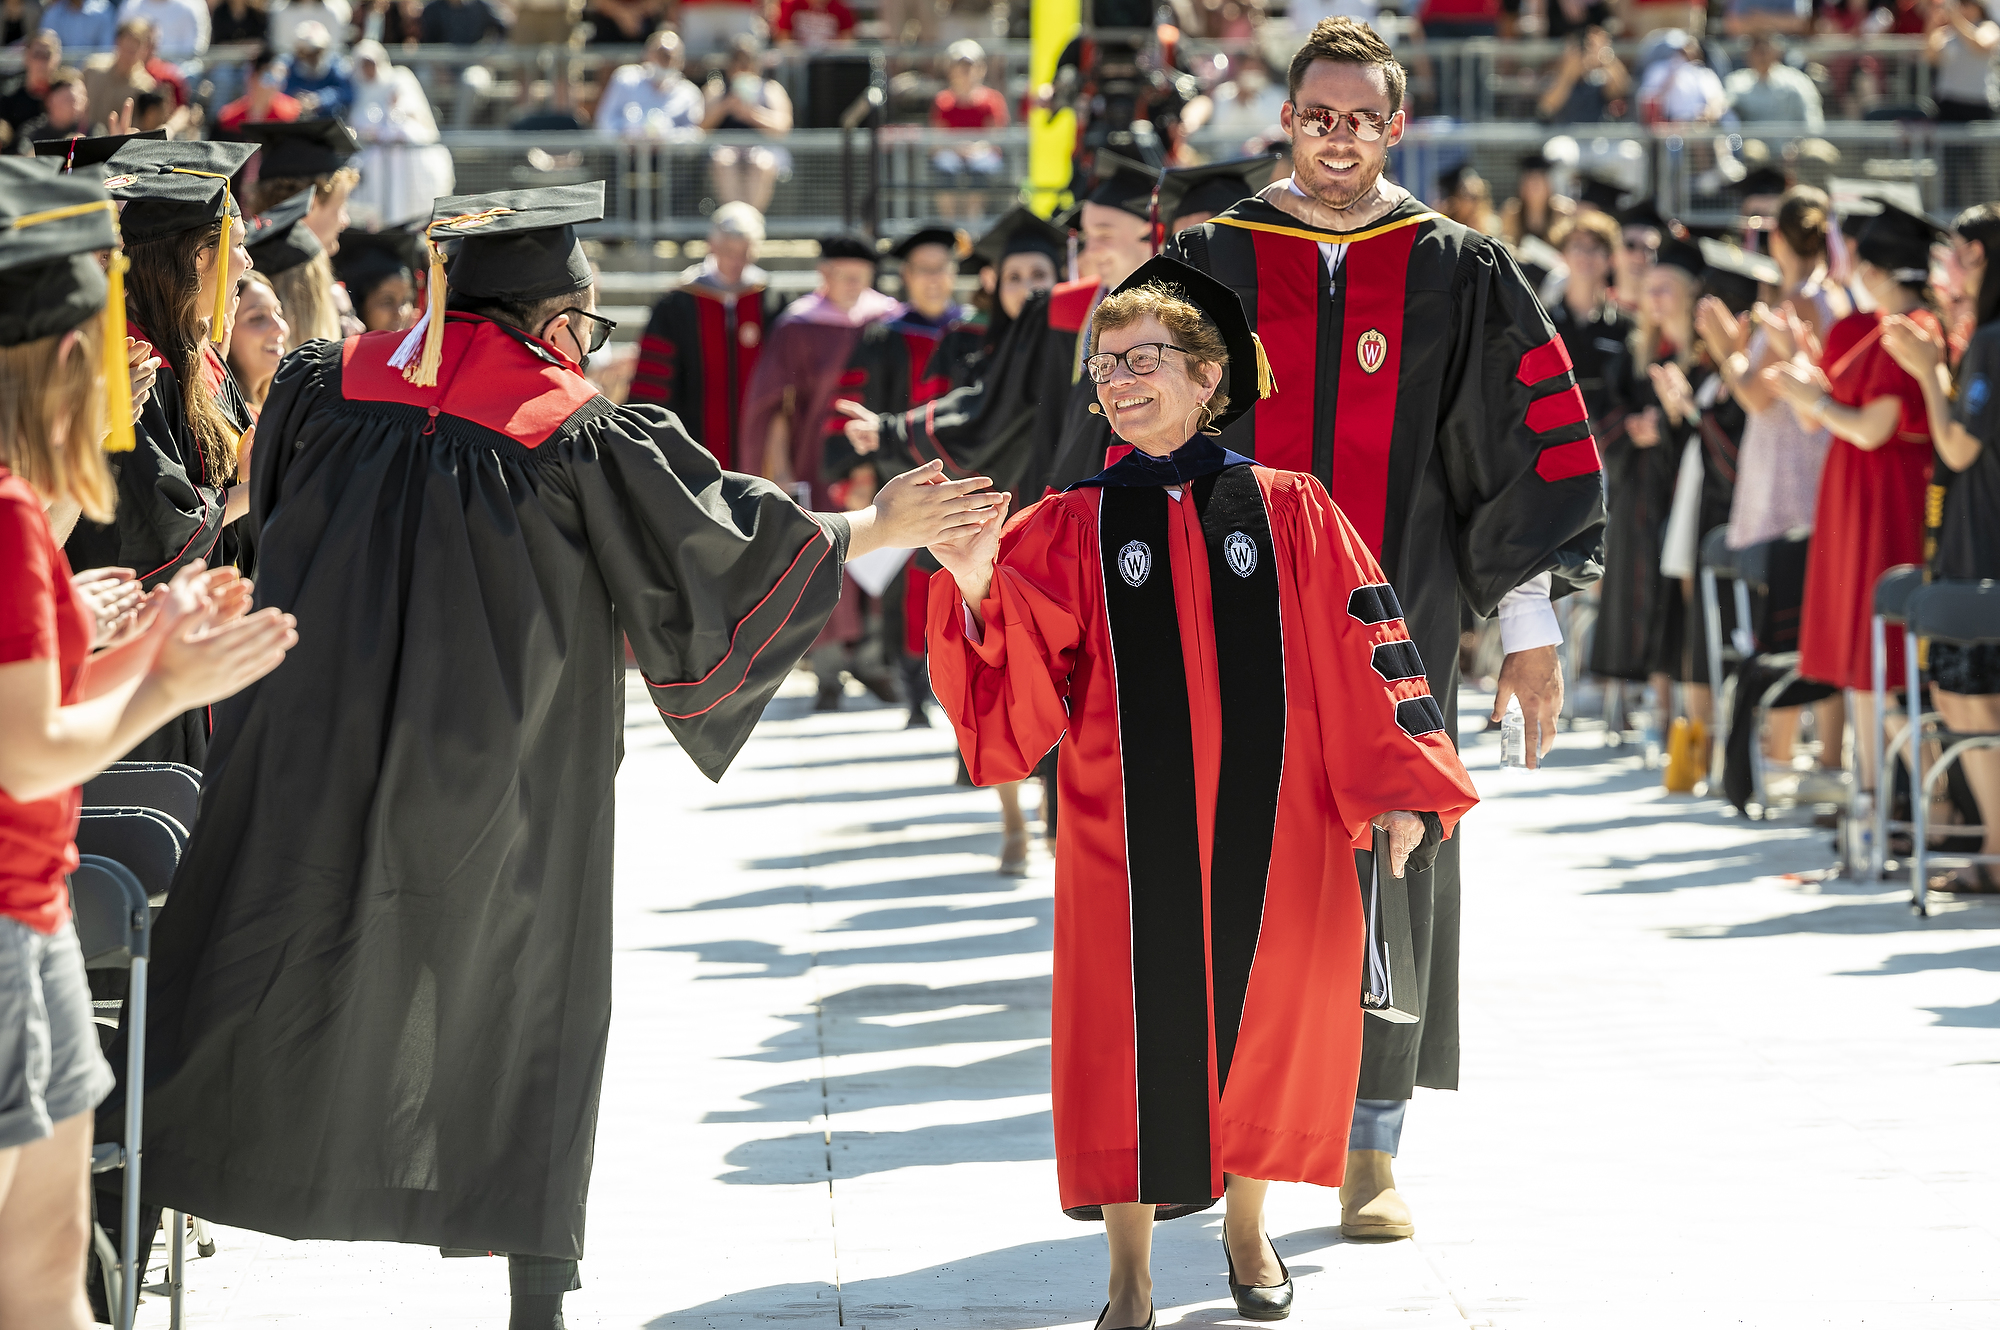 Chancellor Rebecca Blank, wearing red and black Wisconsin academic regalia, exchanges high fives with a graduate in cap and gown